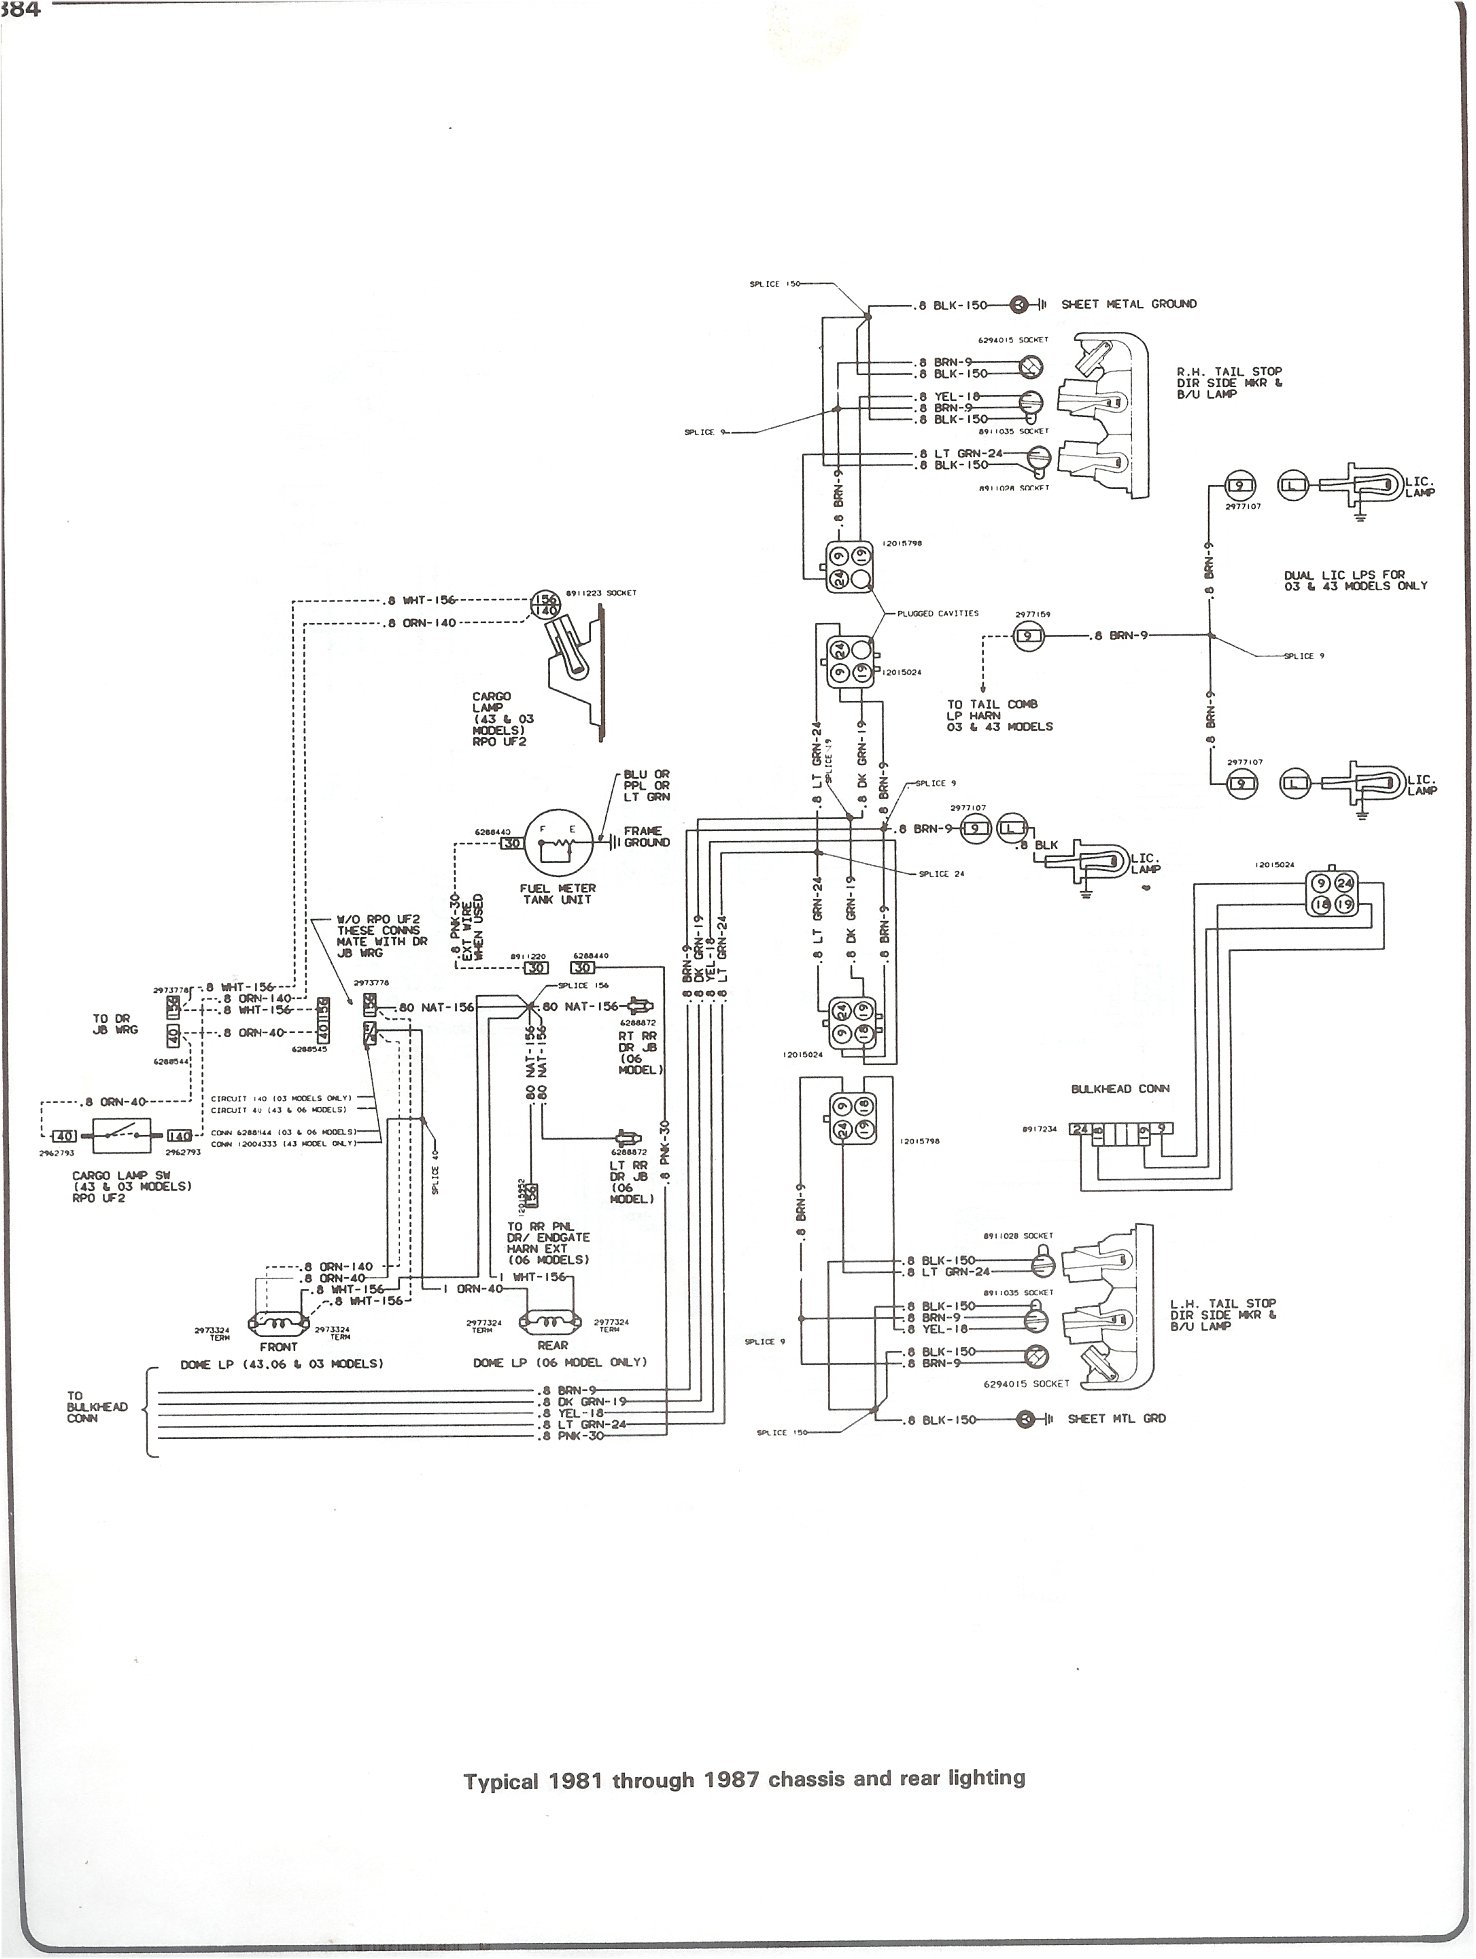 81 87_chass_rr_light complete 73 87 wiring diagrams Three-Speed Fasco Blower Motor Wire Diagram at eliteediting.co